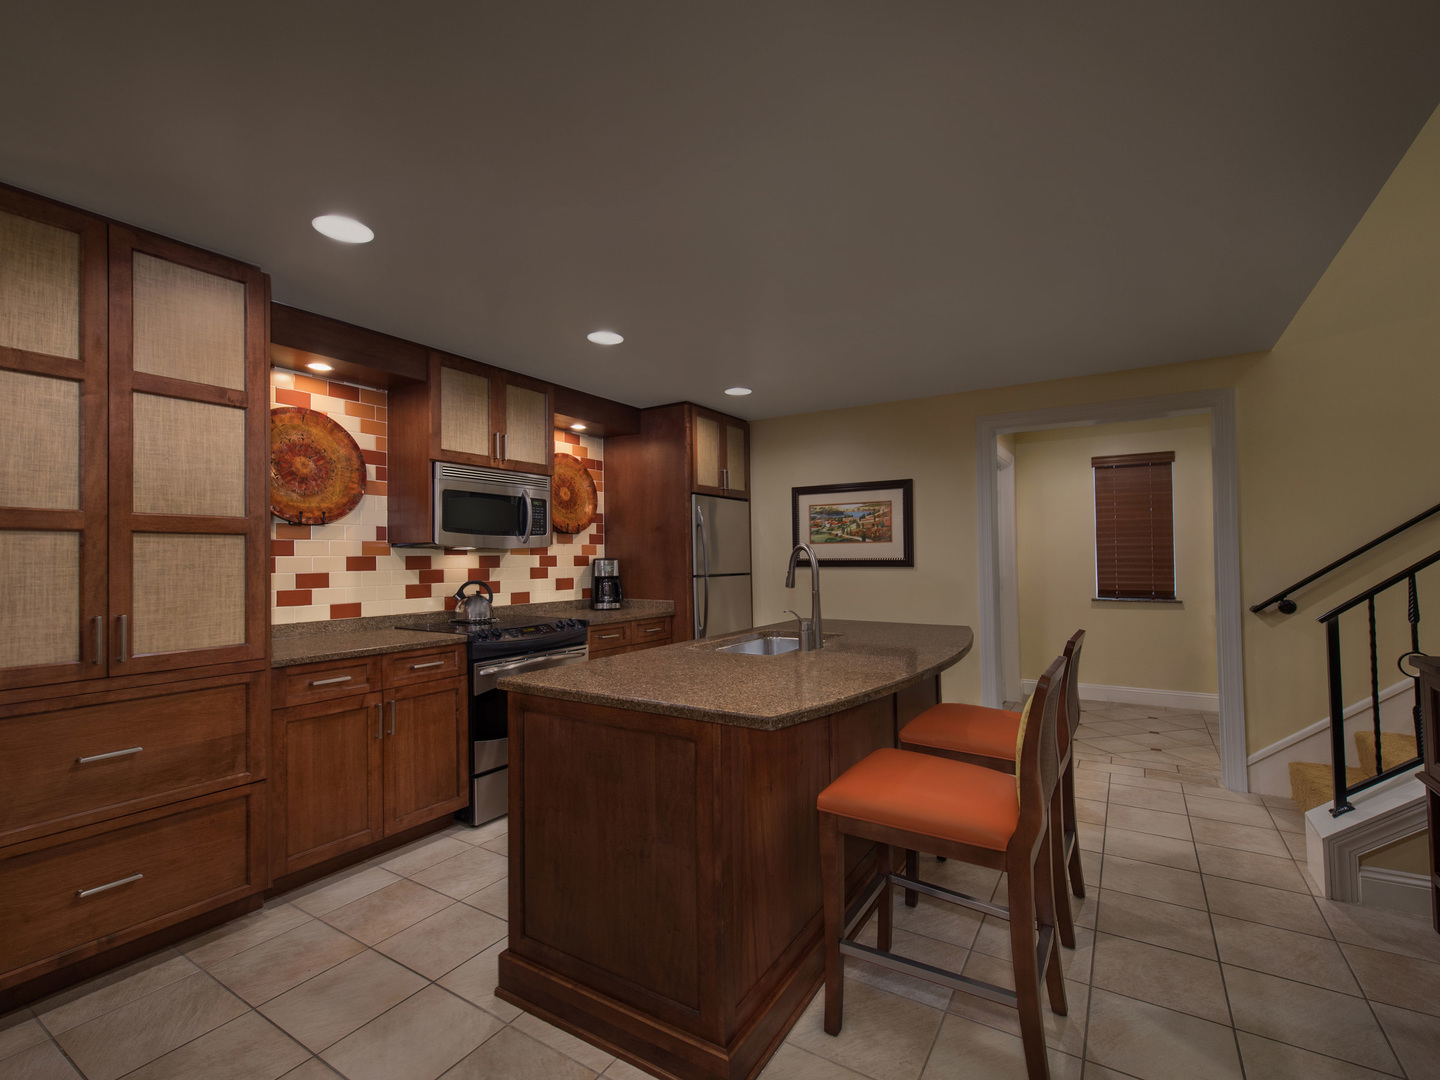 Marriott's Lakeshore Reserve 2-Bedroom Townhouse Kitchen/Dining Room. Marriott's Lakeshore Reserve is located in Orlando, Florida United States.